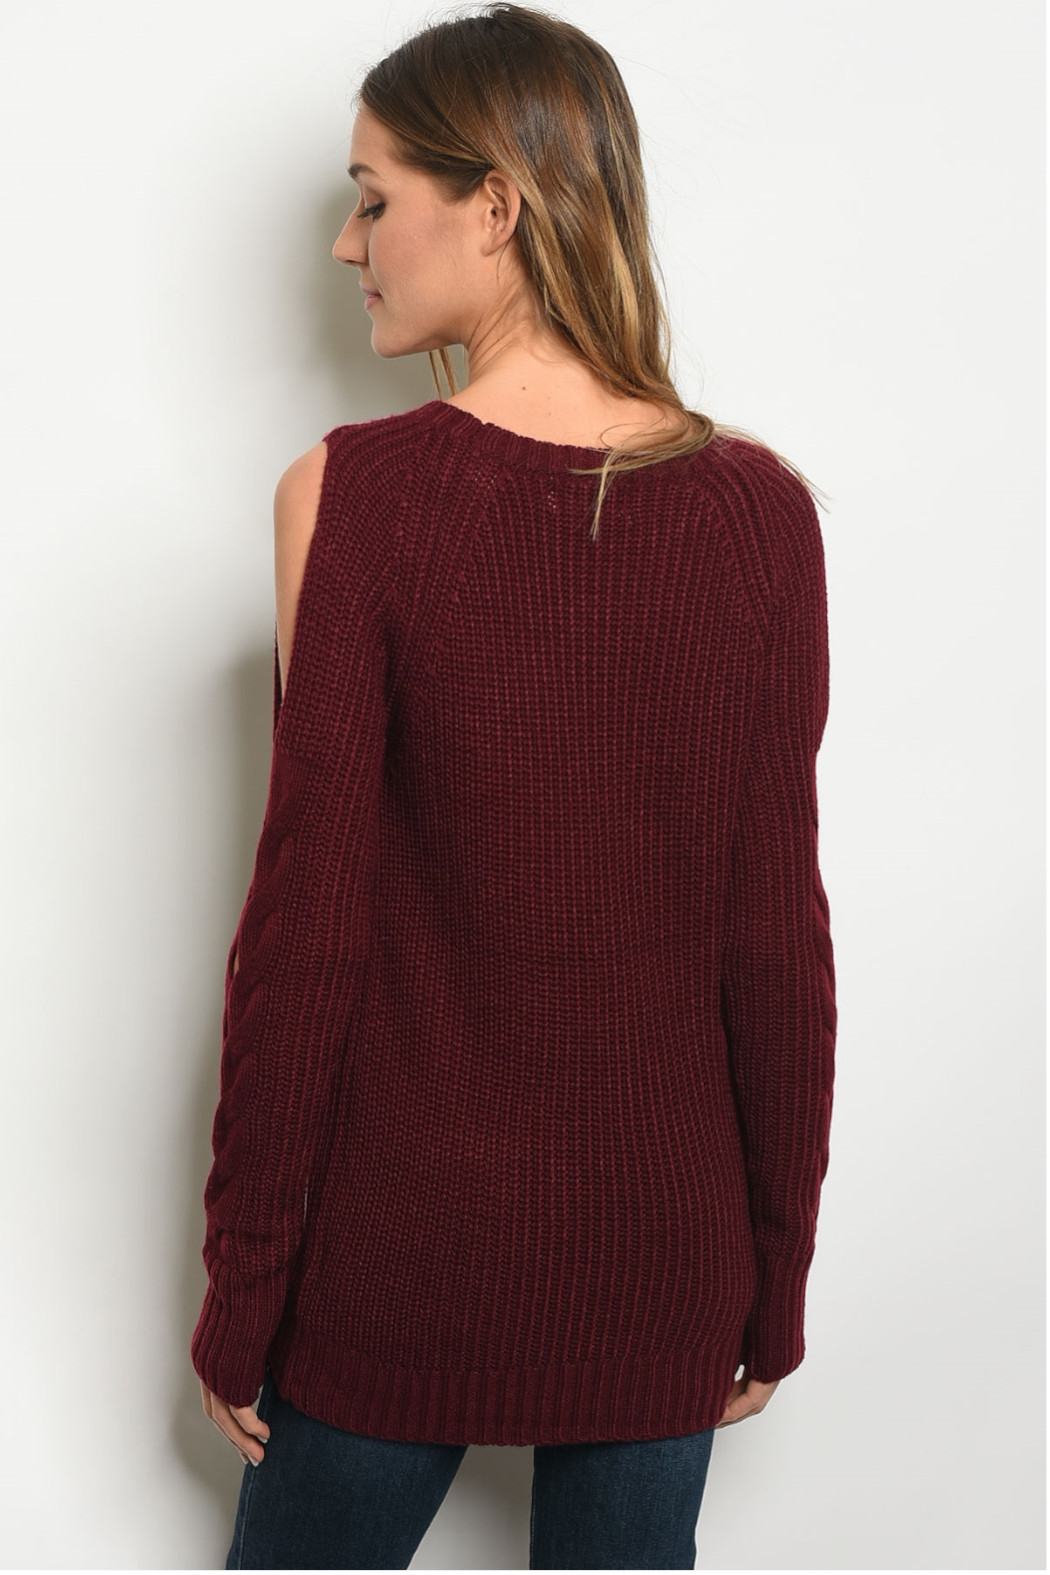 LoveRiche Wine Cable Knit Sweater - Front Full Image